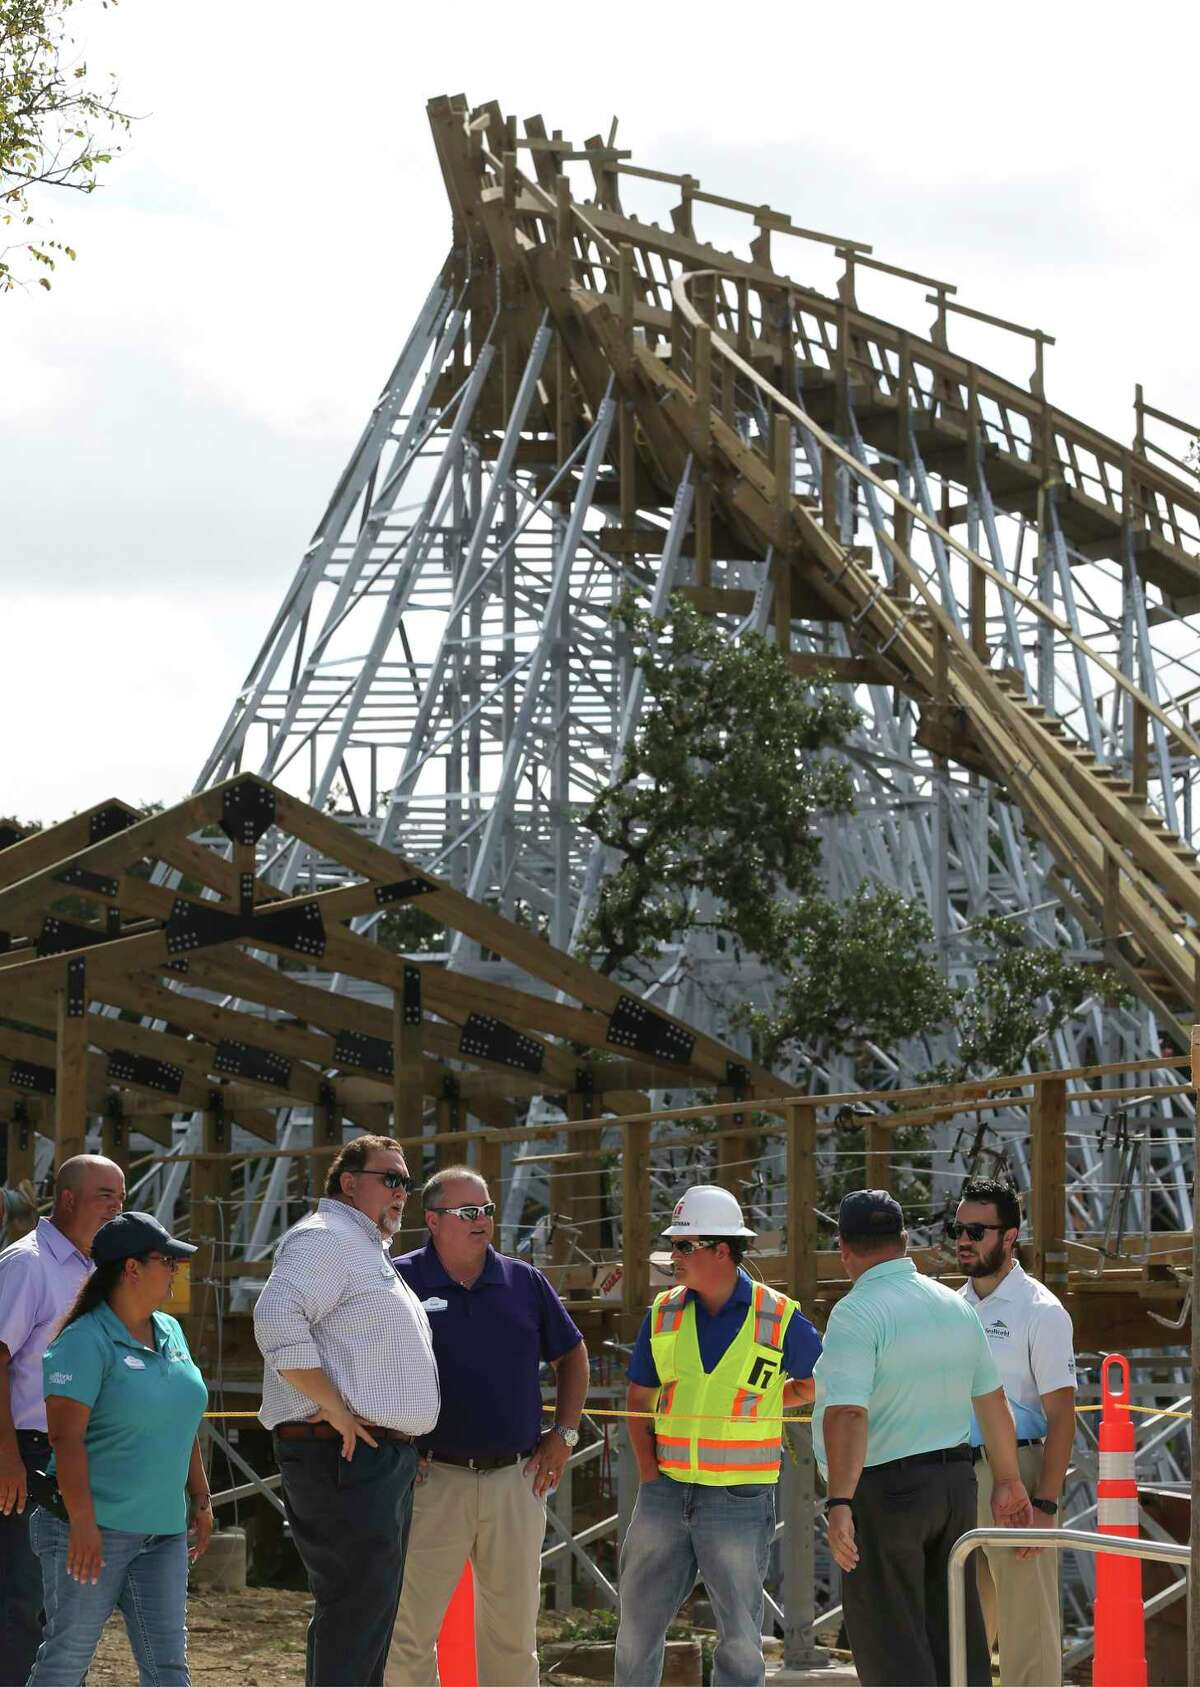 SeaWorld San Antonio officials stand near the construction of their latest upcoming thrill ride, Texas Stingray, during a press conference on Thursday, Sept. 12, 2019. The Texas Stingray is a roller coaster with wooden tracks with steel supports and zips riders around at 55 miles per hour. There are steep 76-degree banks and a 100-foot drop to titillate thrill riders. Especially unique is the minimum rider height is 46 inches which give younger thrill seekers the opportunity to get on the coaster. Texas Stingray is still under construction and is expected to open to guests by spring 2020 according to officials. (Kin Man Hui/San Antonio Express-News)